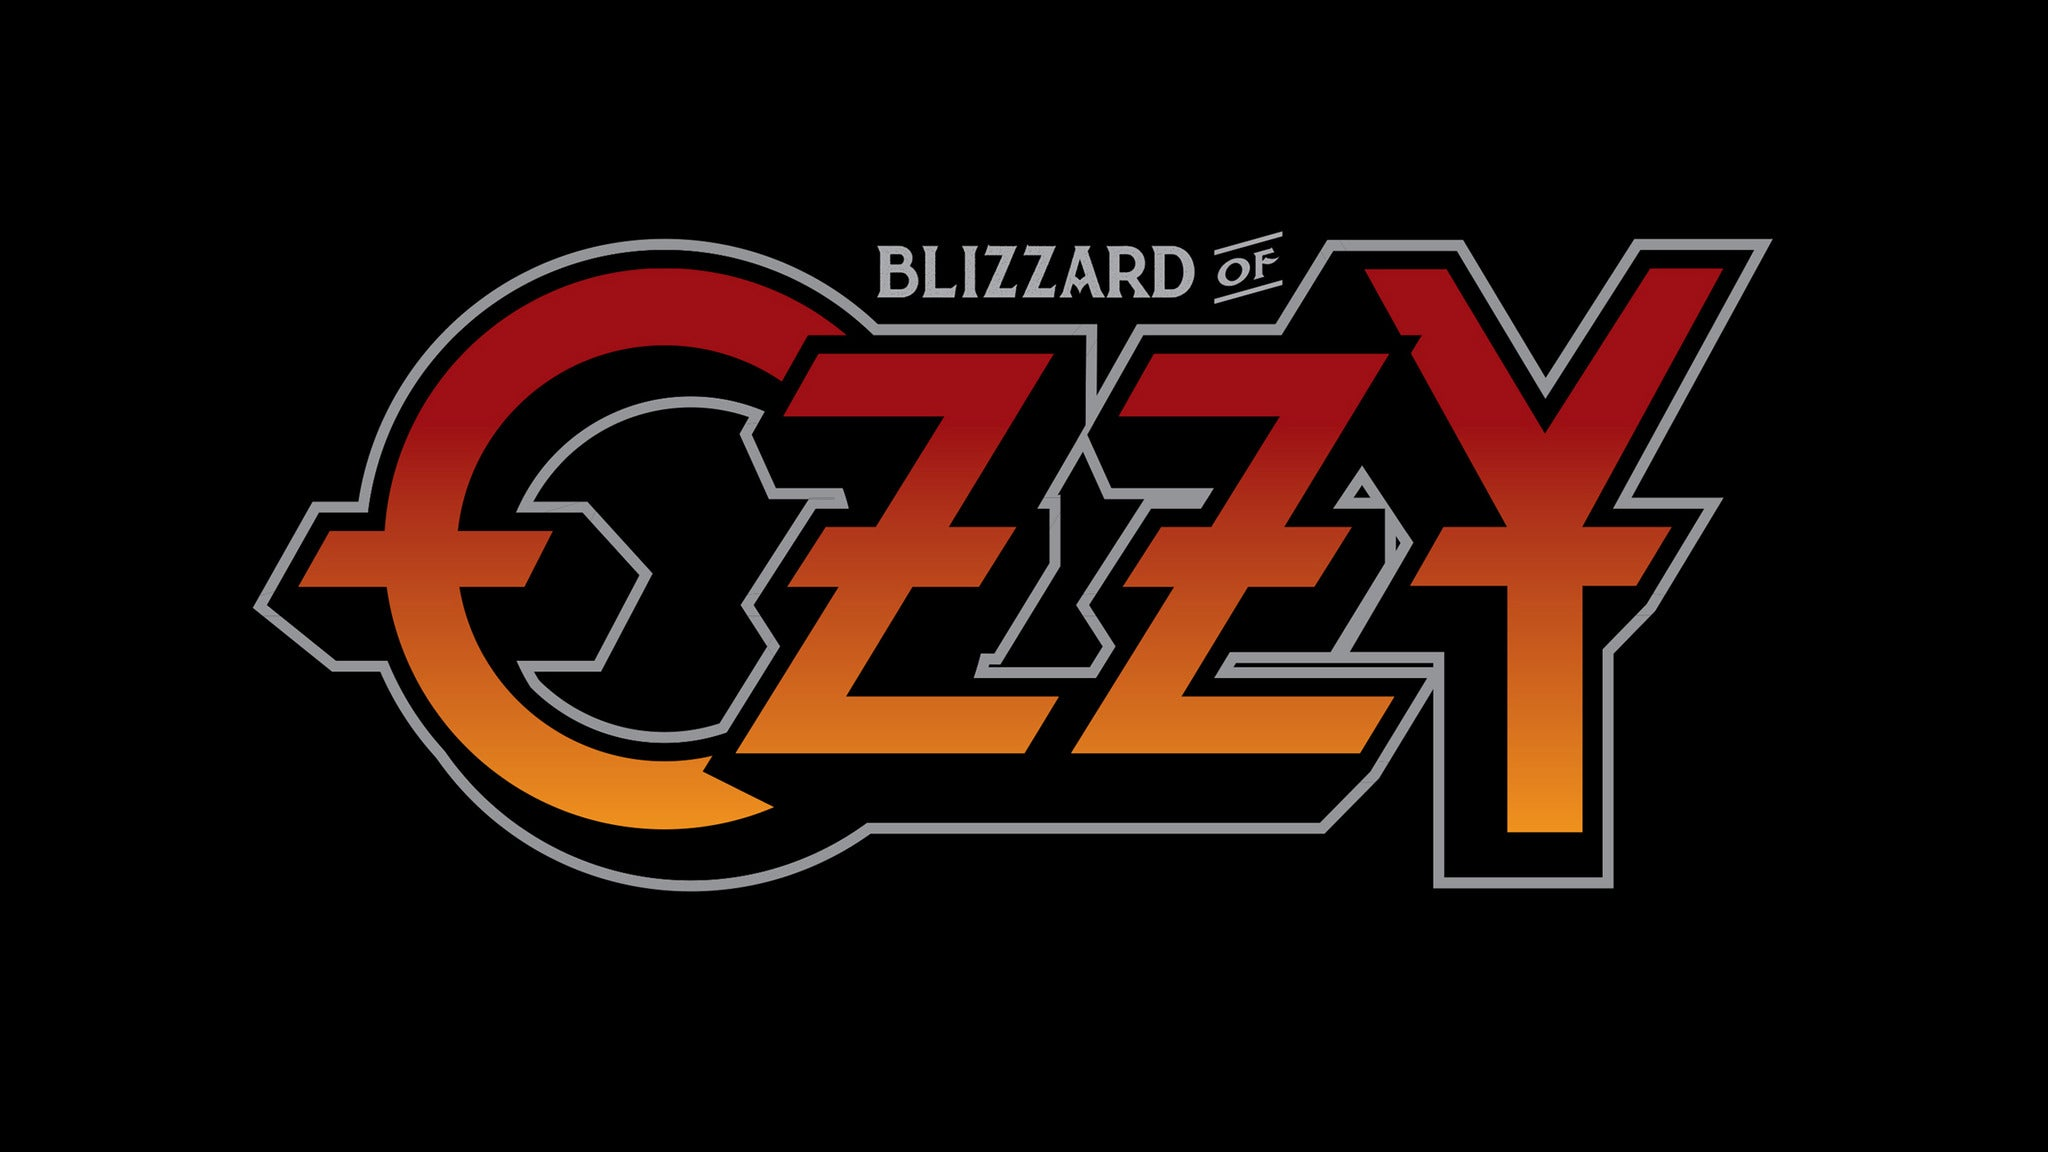 Blizzard of Ozzy - Ozzy Osbourne Tribute Band